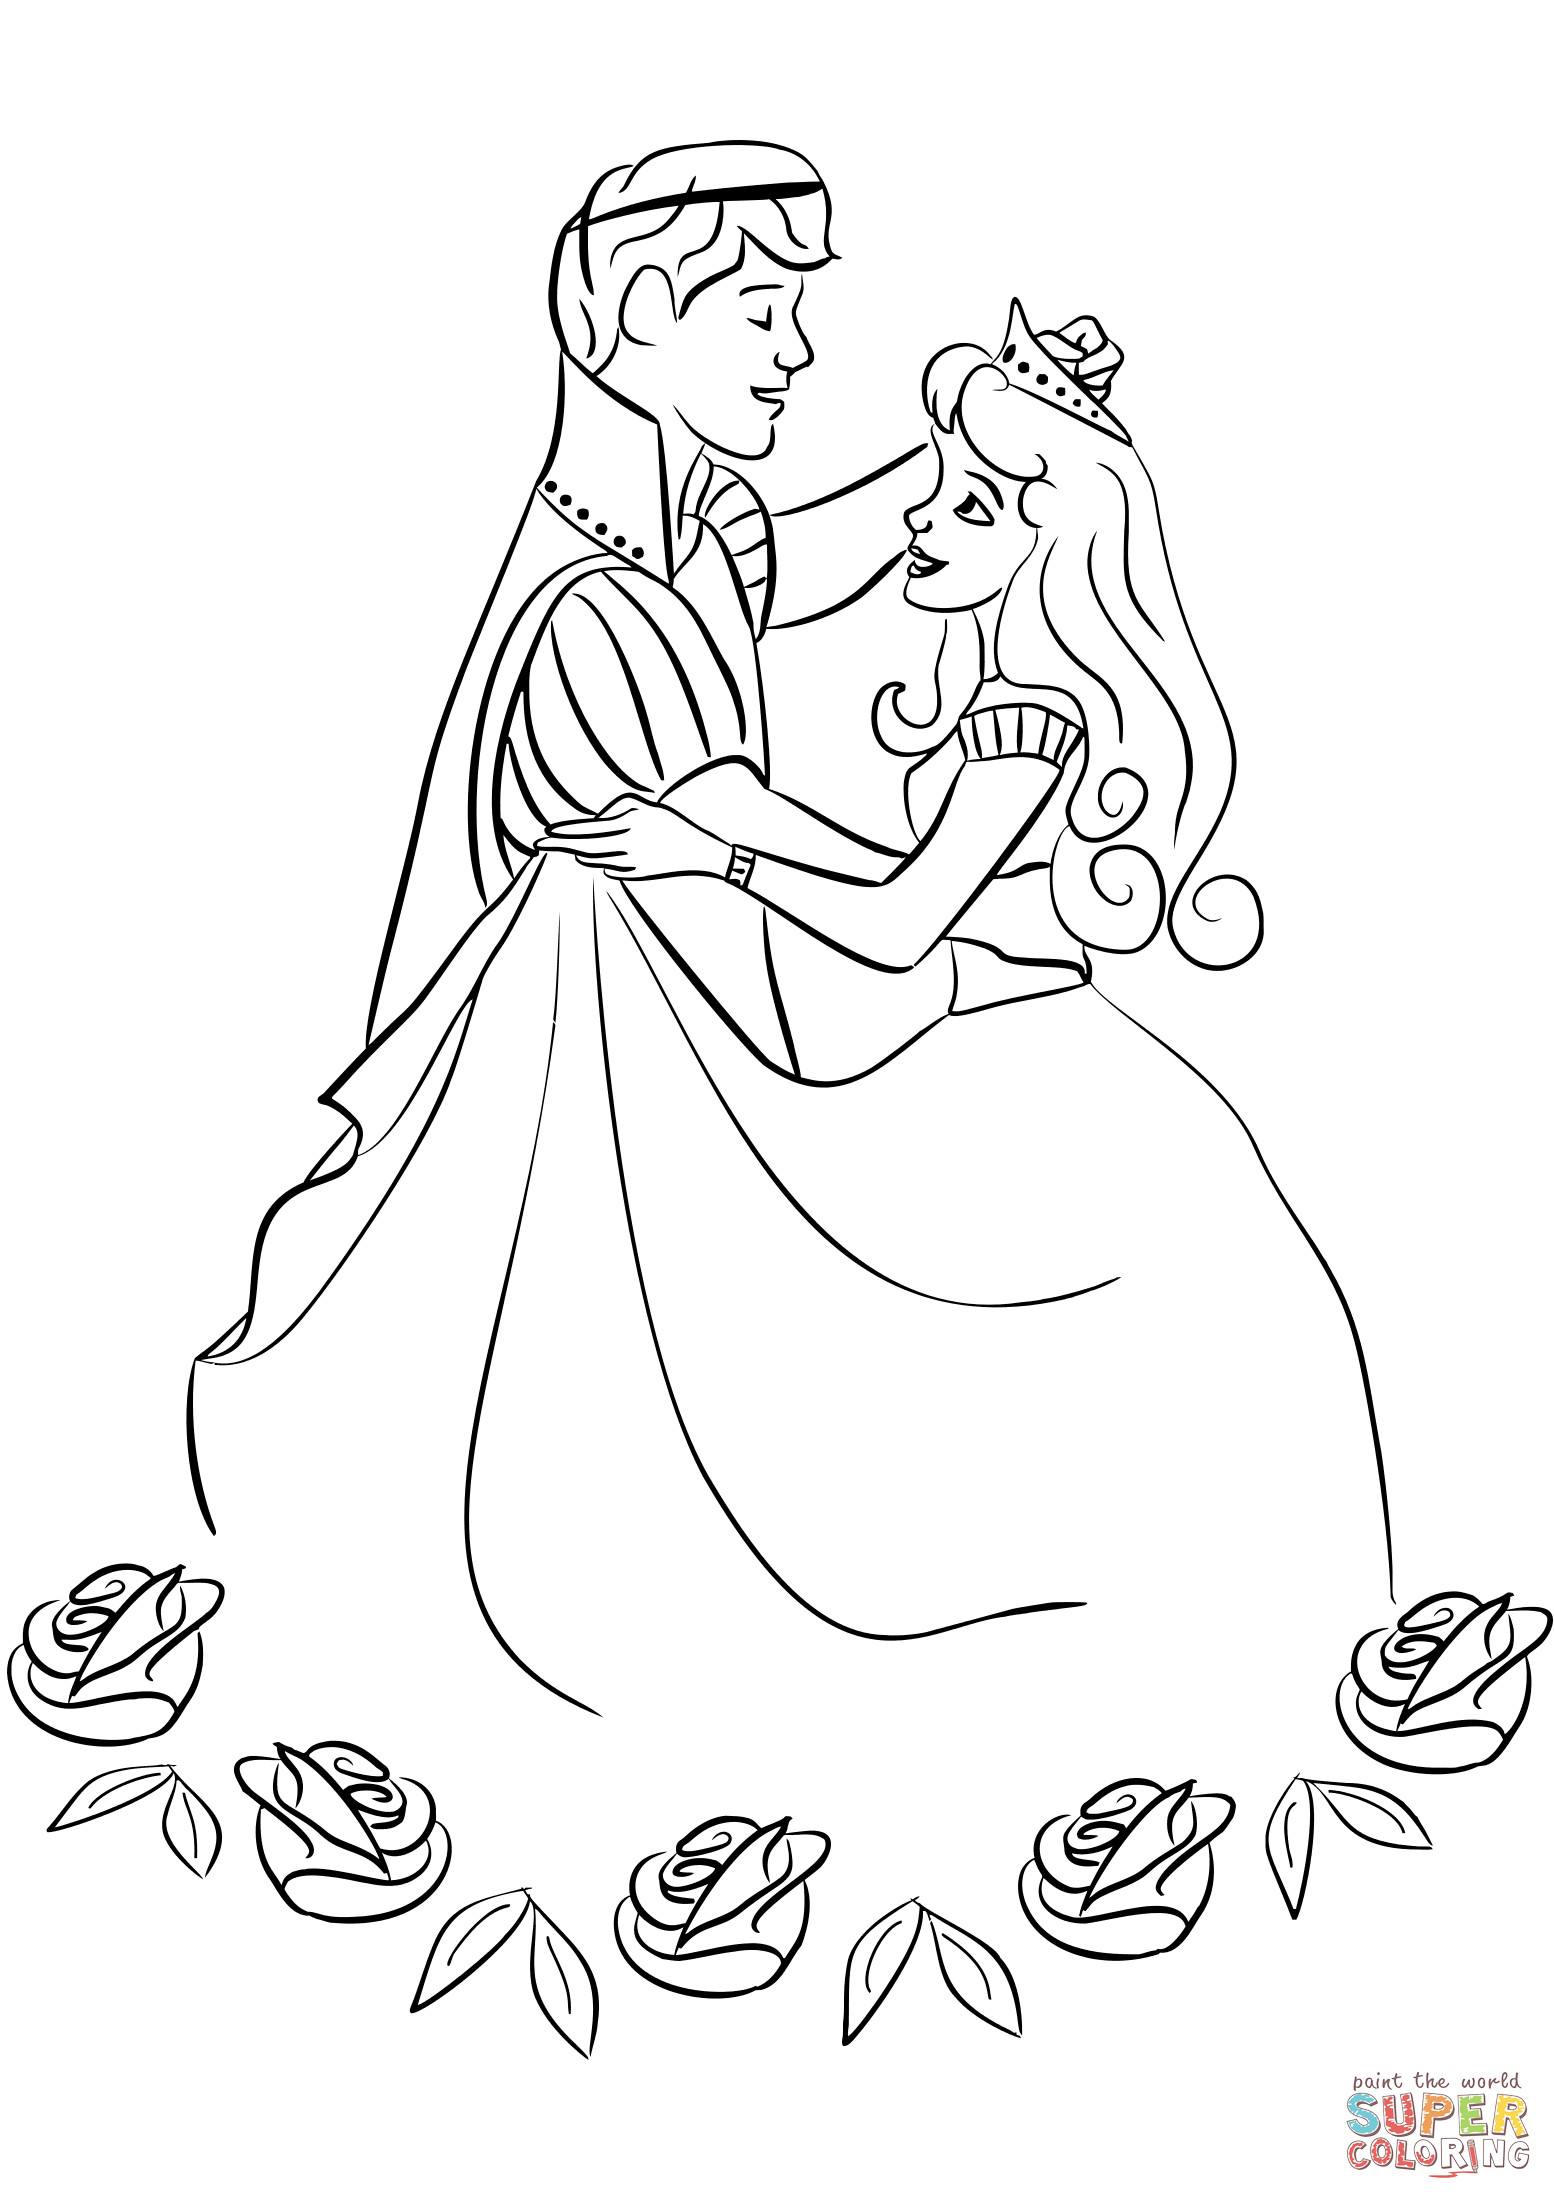 Princess Dancing Coloring Pages Princess Coloring Pages Disney Princess Coloring Pages Mermaid Coloring Pages